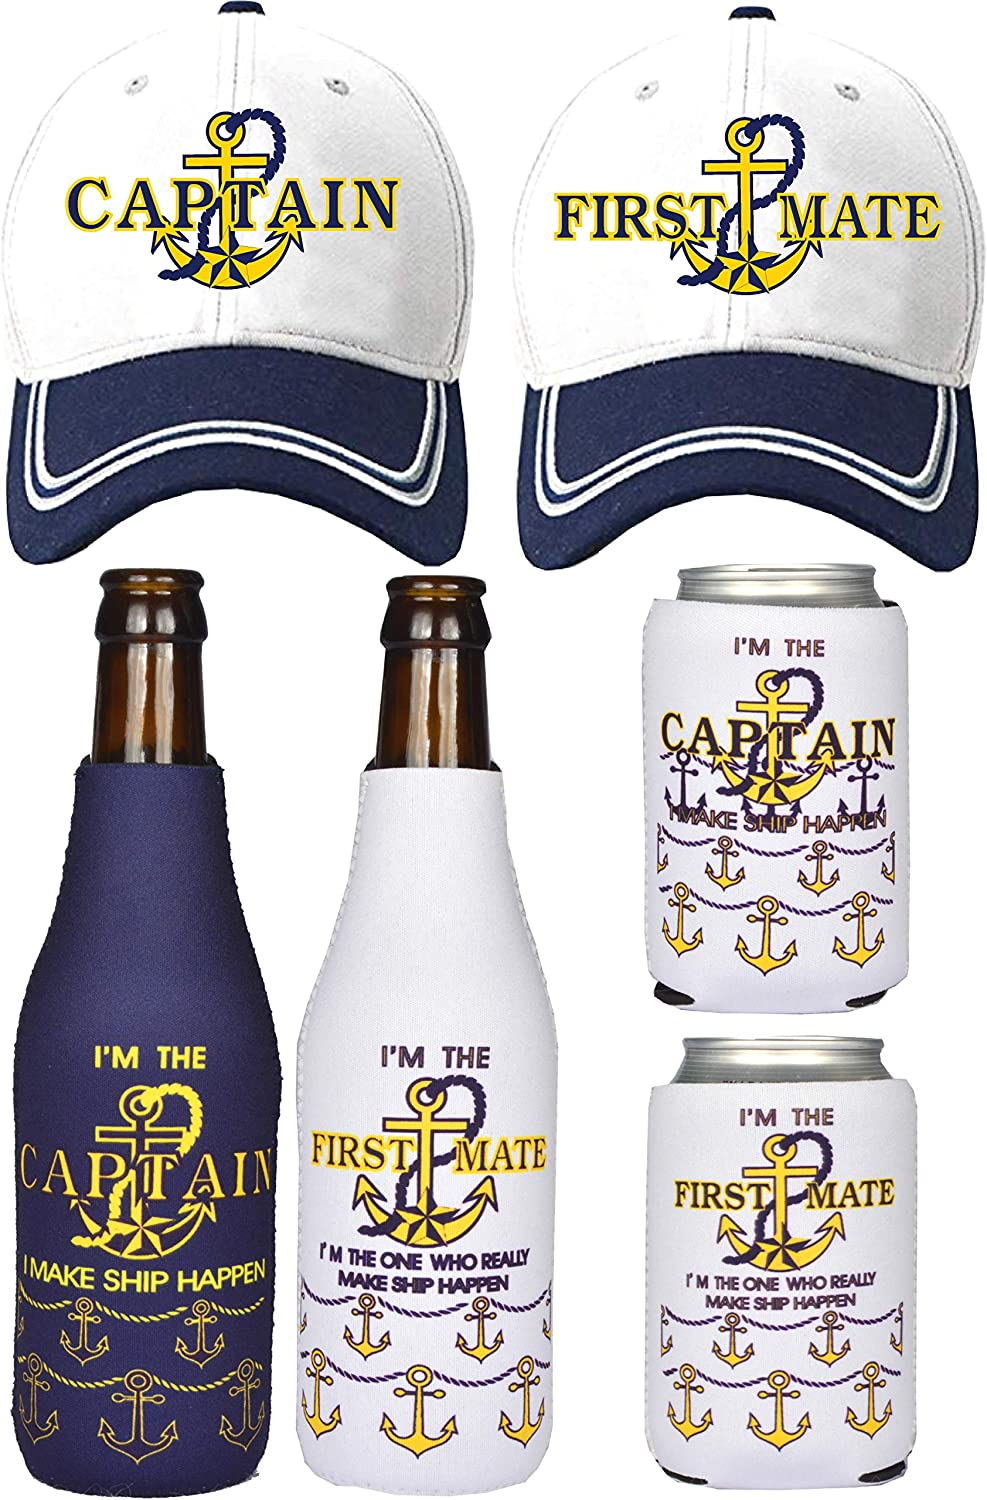 Captain Hats, First Mate Hats, Captain Gifts, First Mate Gifts for Women, Boat Captain Gifts, Gifts for Boaters, Boating Gifts, Boat Captain Gifts, Boating Gifts for Couple, Nautical Sailing Match